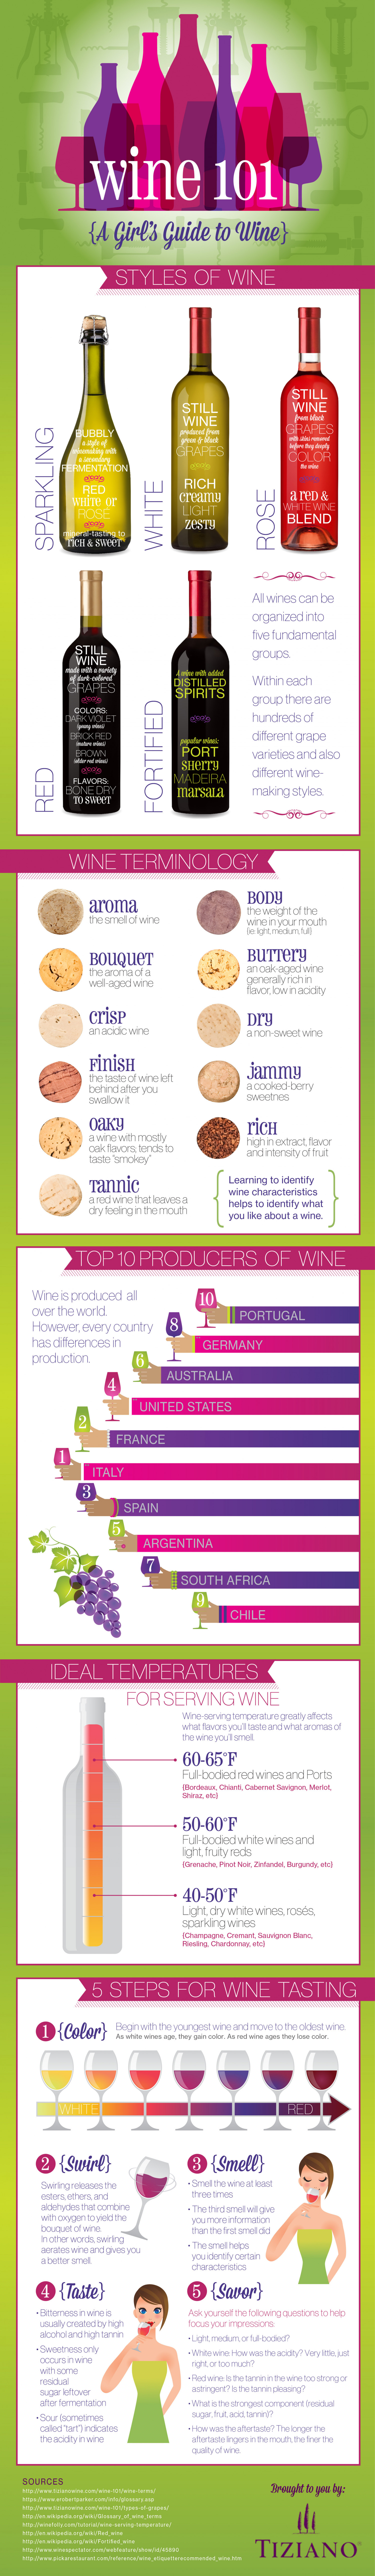 Wine 101 - A Girl's Guide to Wine Infographic